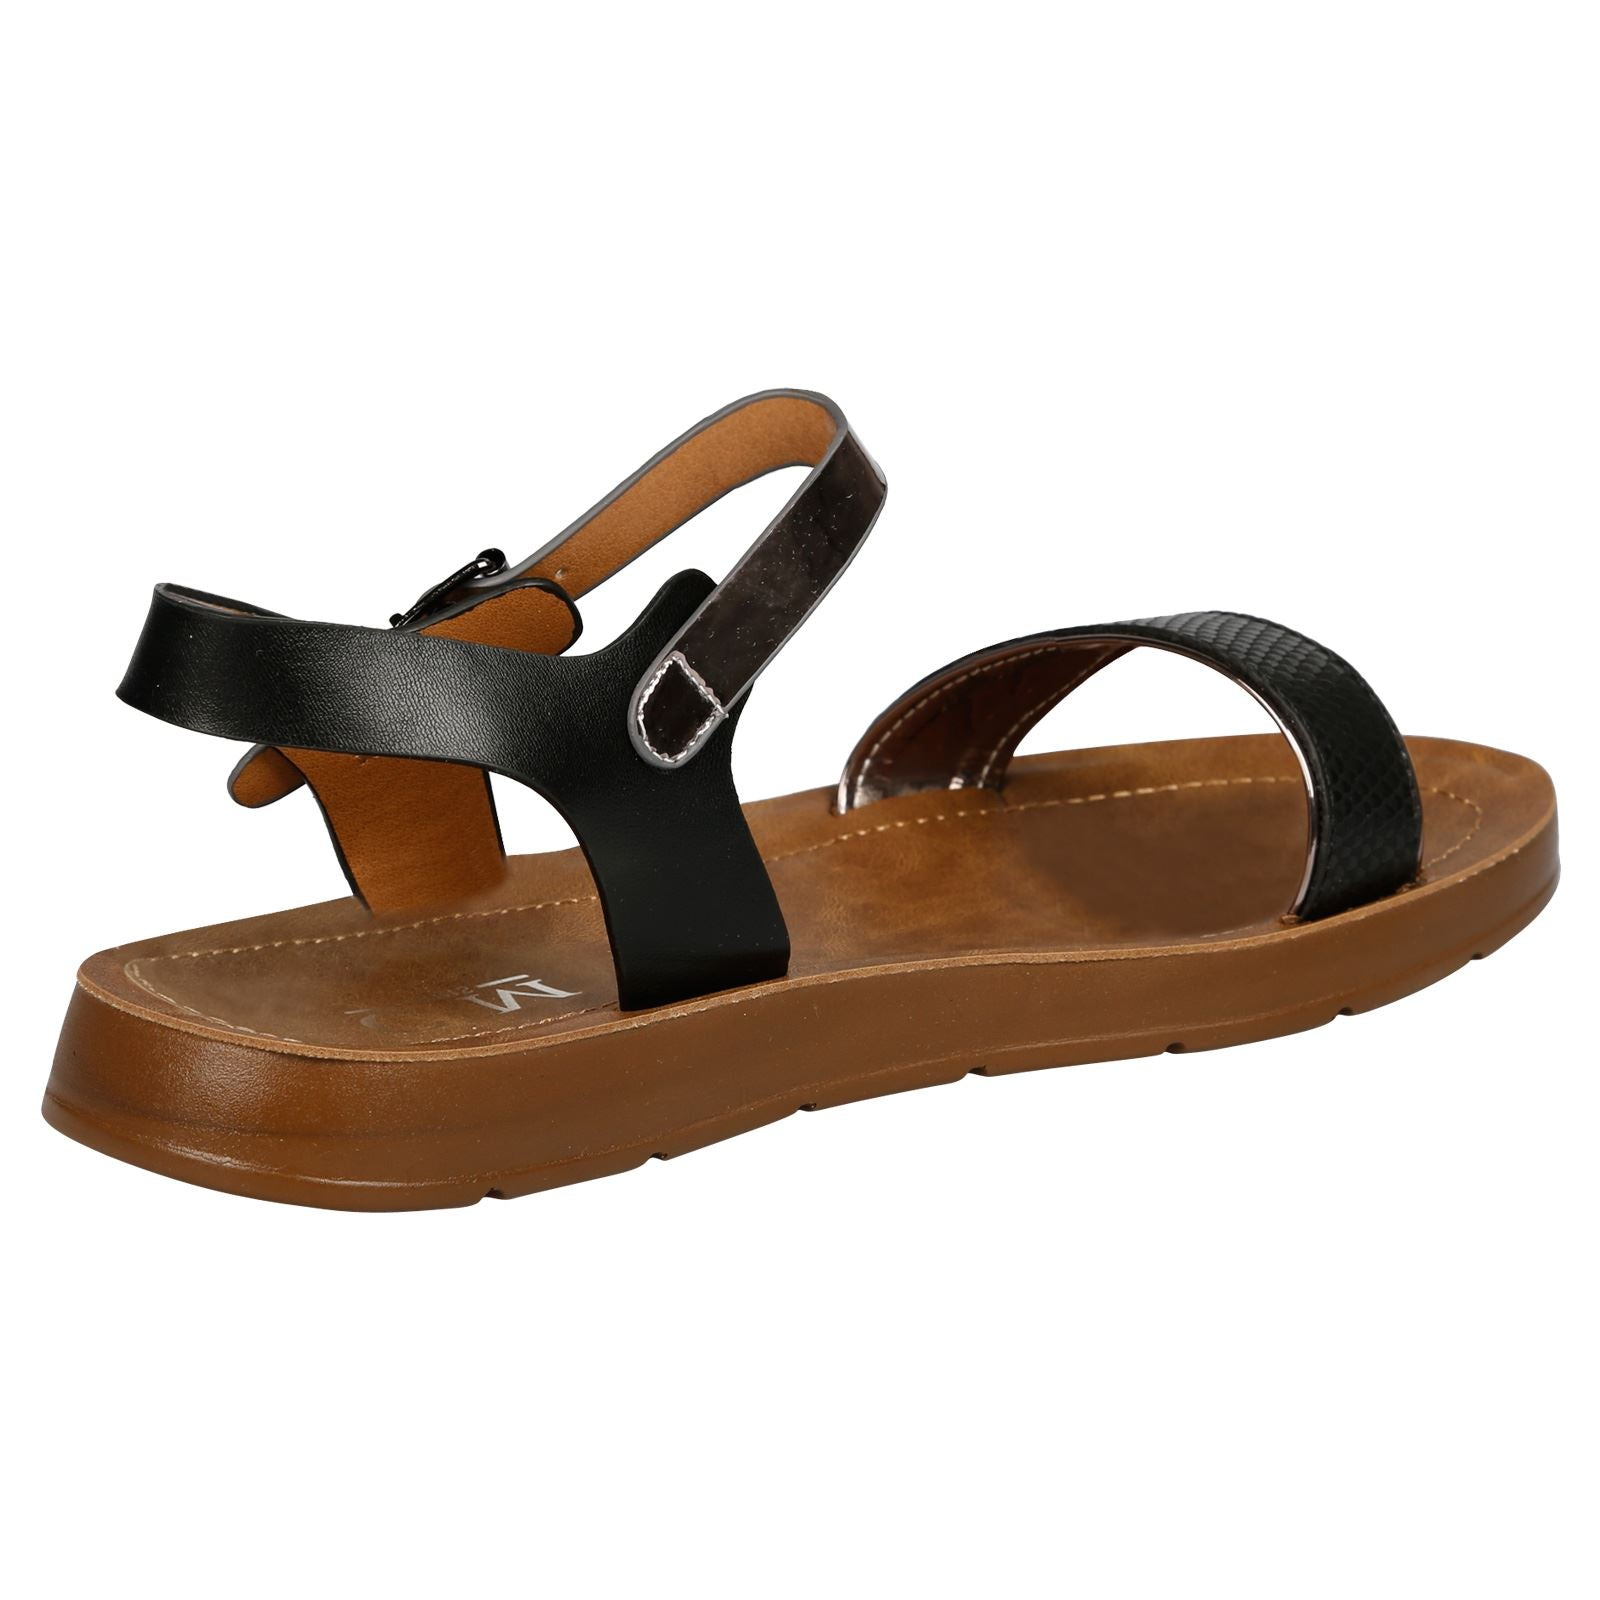 Joselyen Two Tone Footbed Sandals in Black